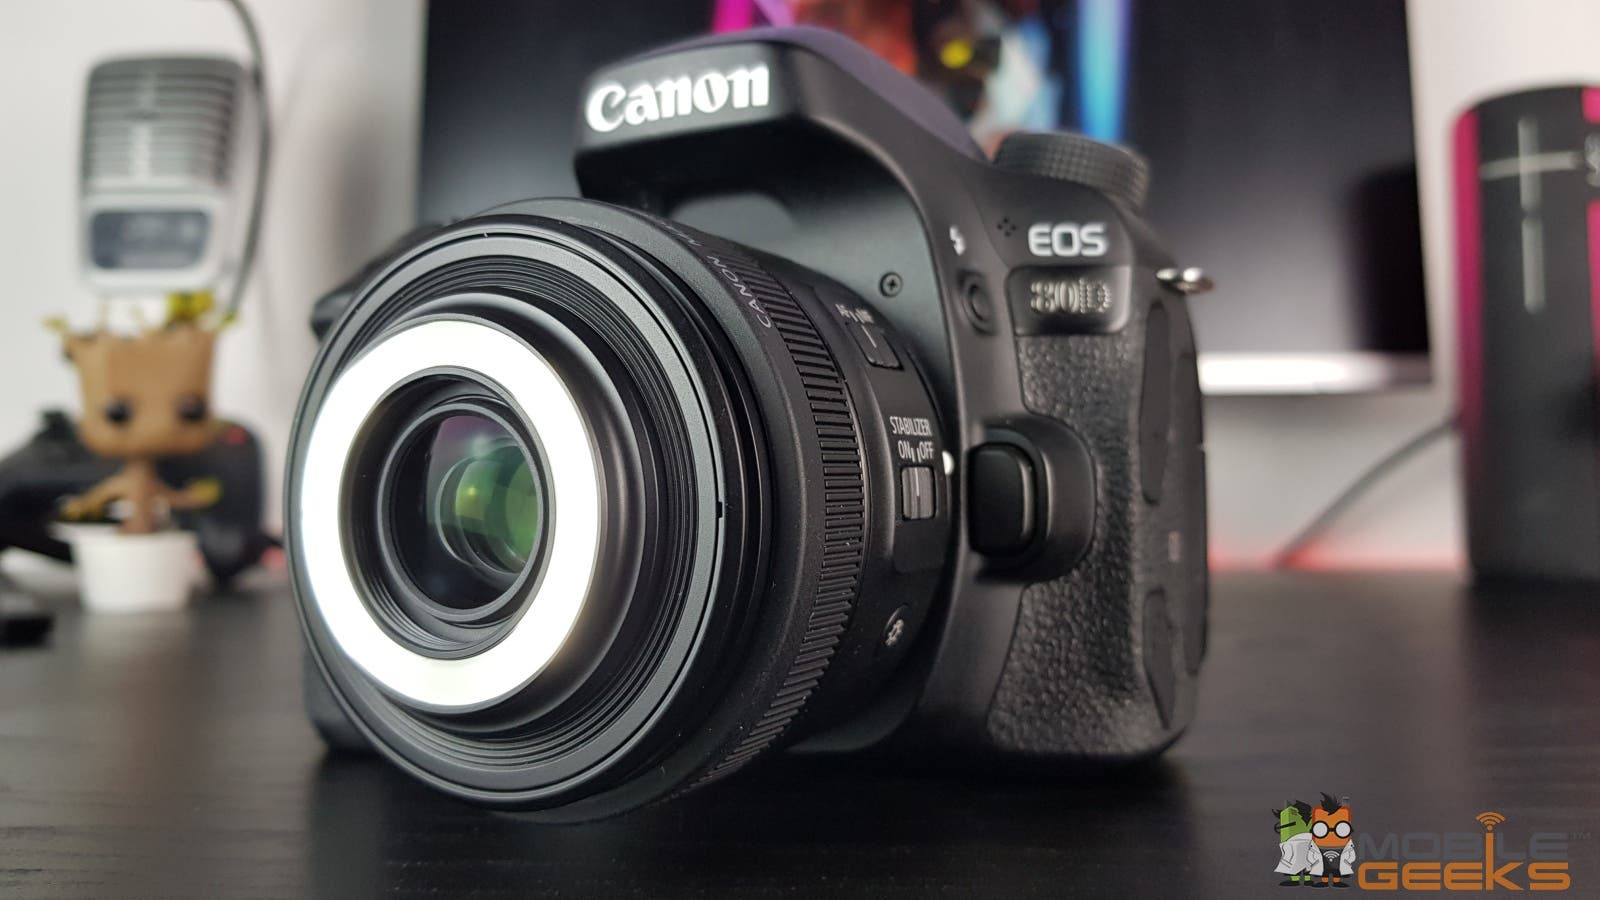 Canon 35mm f2.8 IS STM